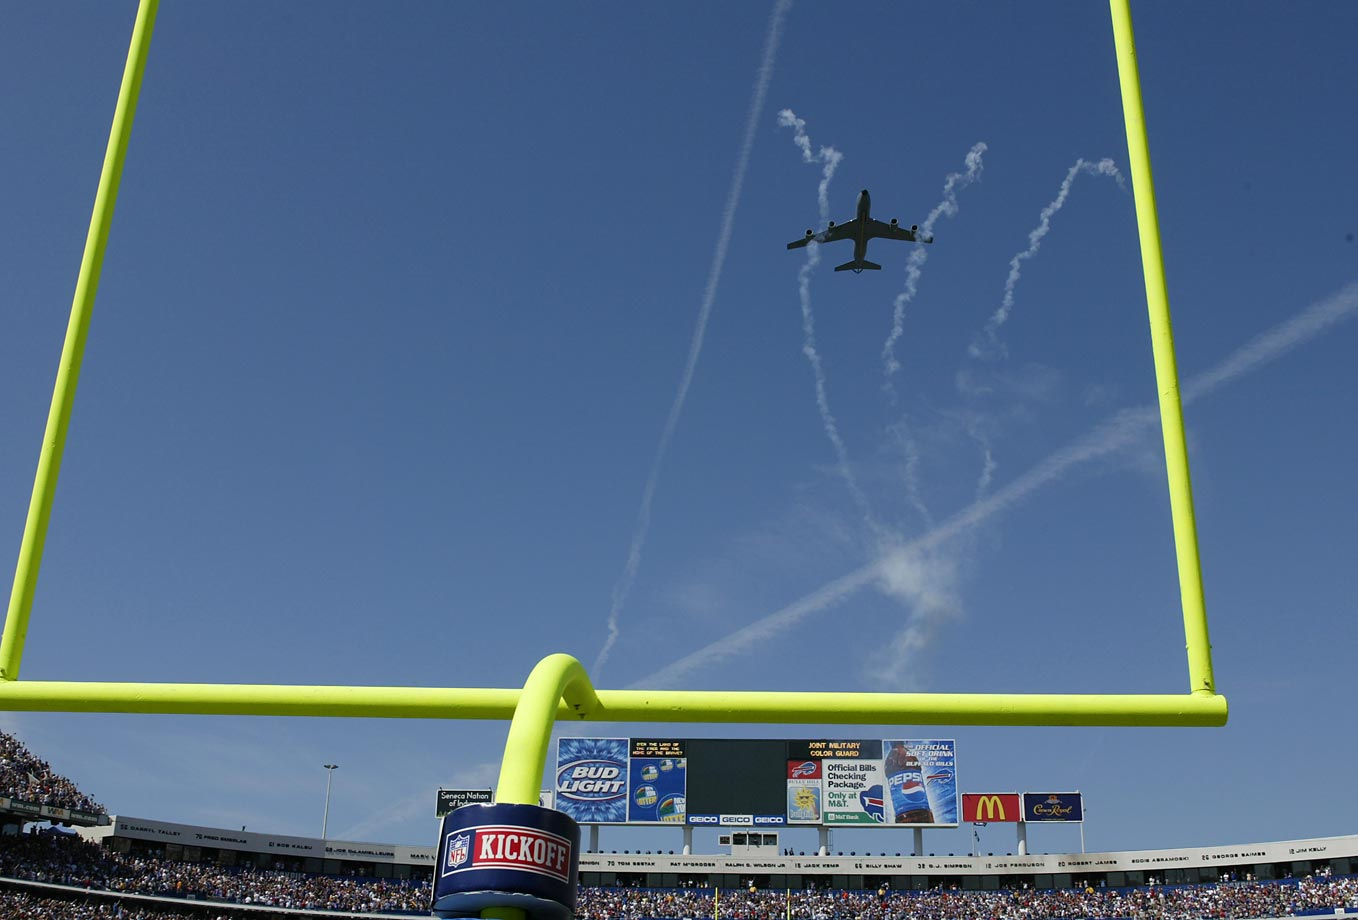 A military flyover prior to the game between the Houston Texans and Buffalo Bills on Sept. 11, 2005.